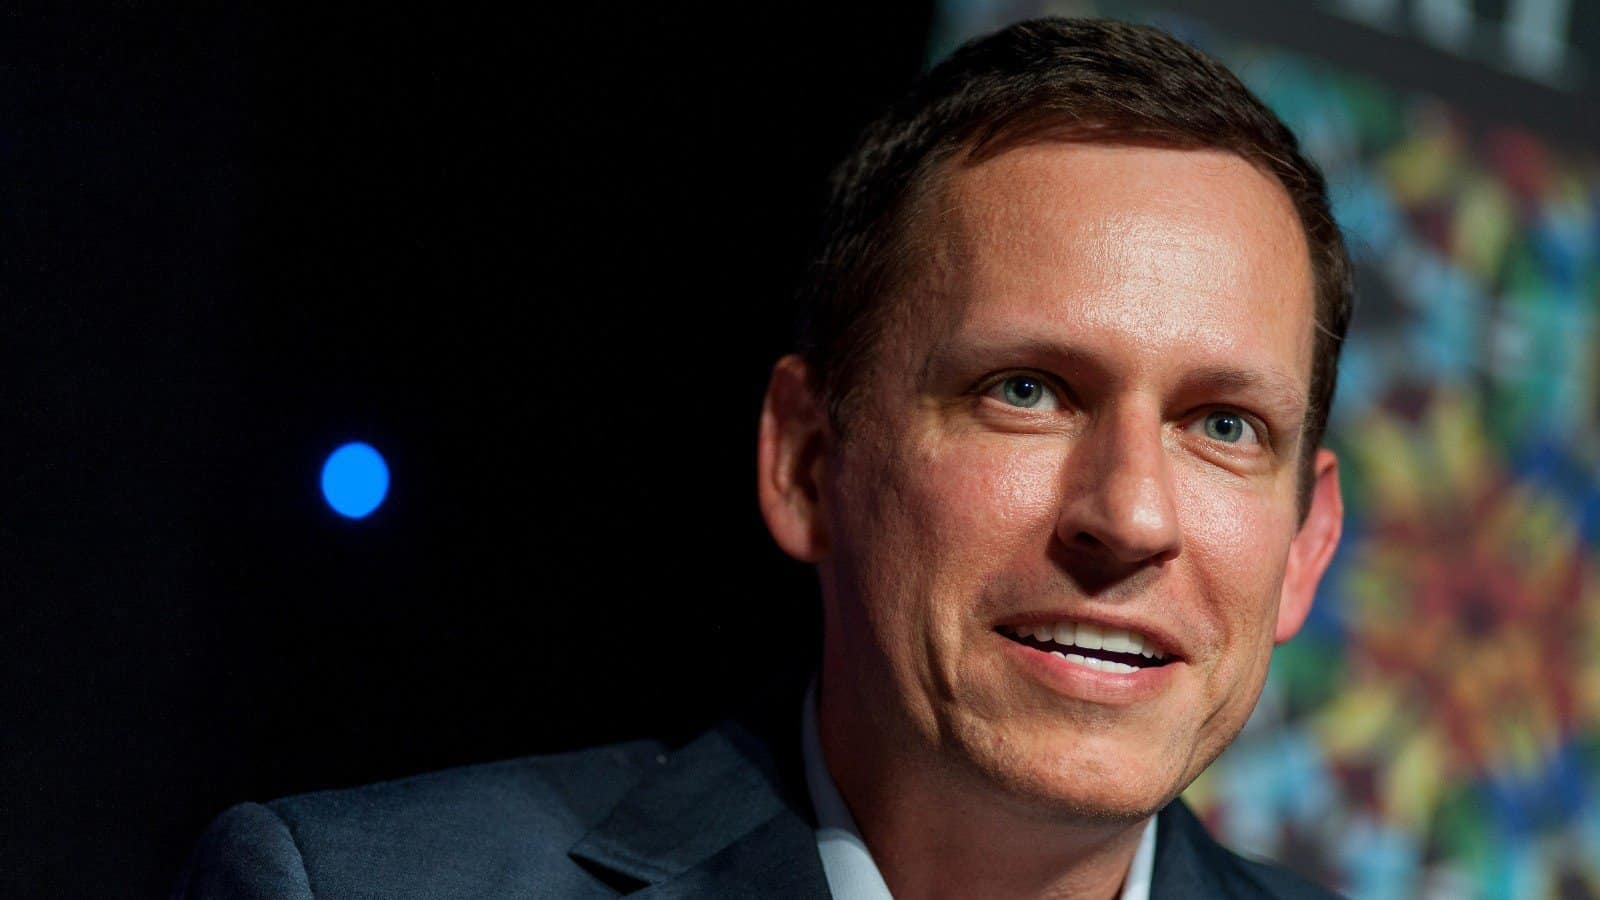 Surprising Past Jobs - Peter Thiel